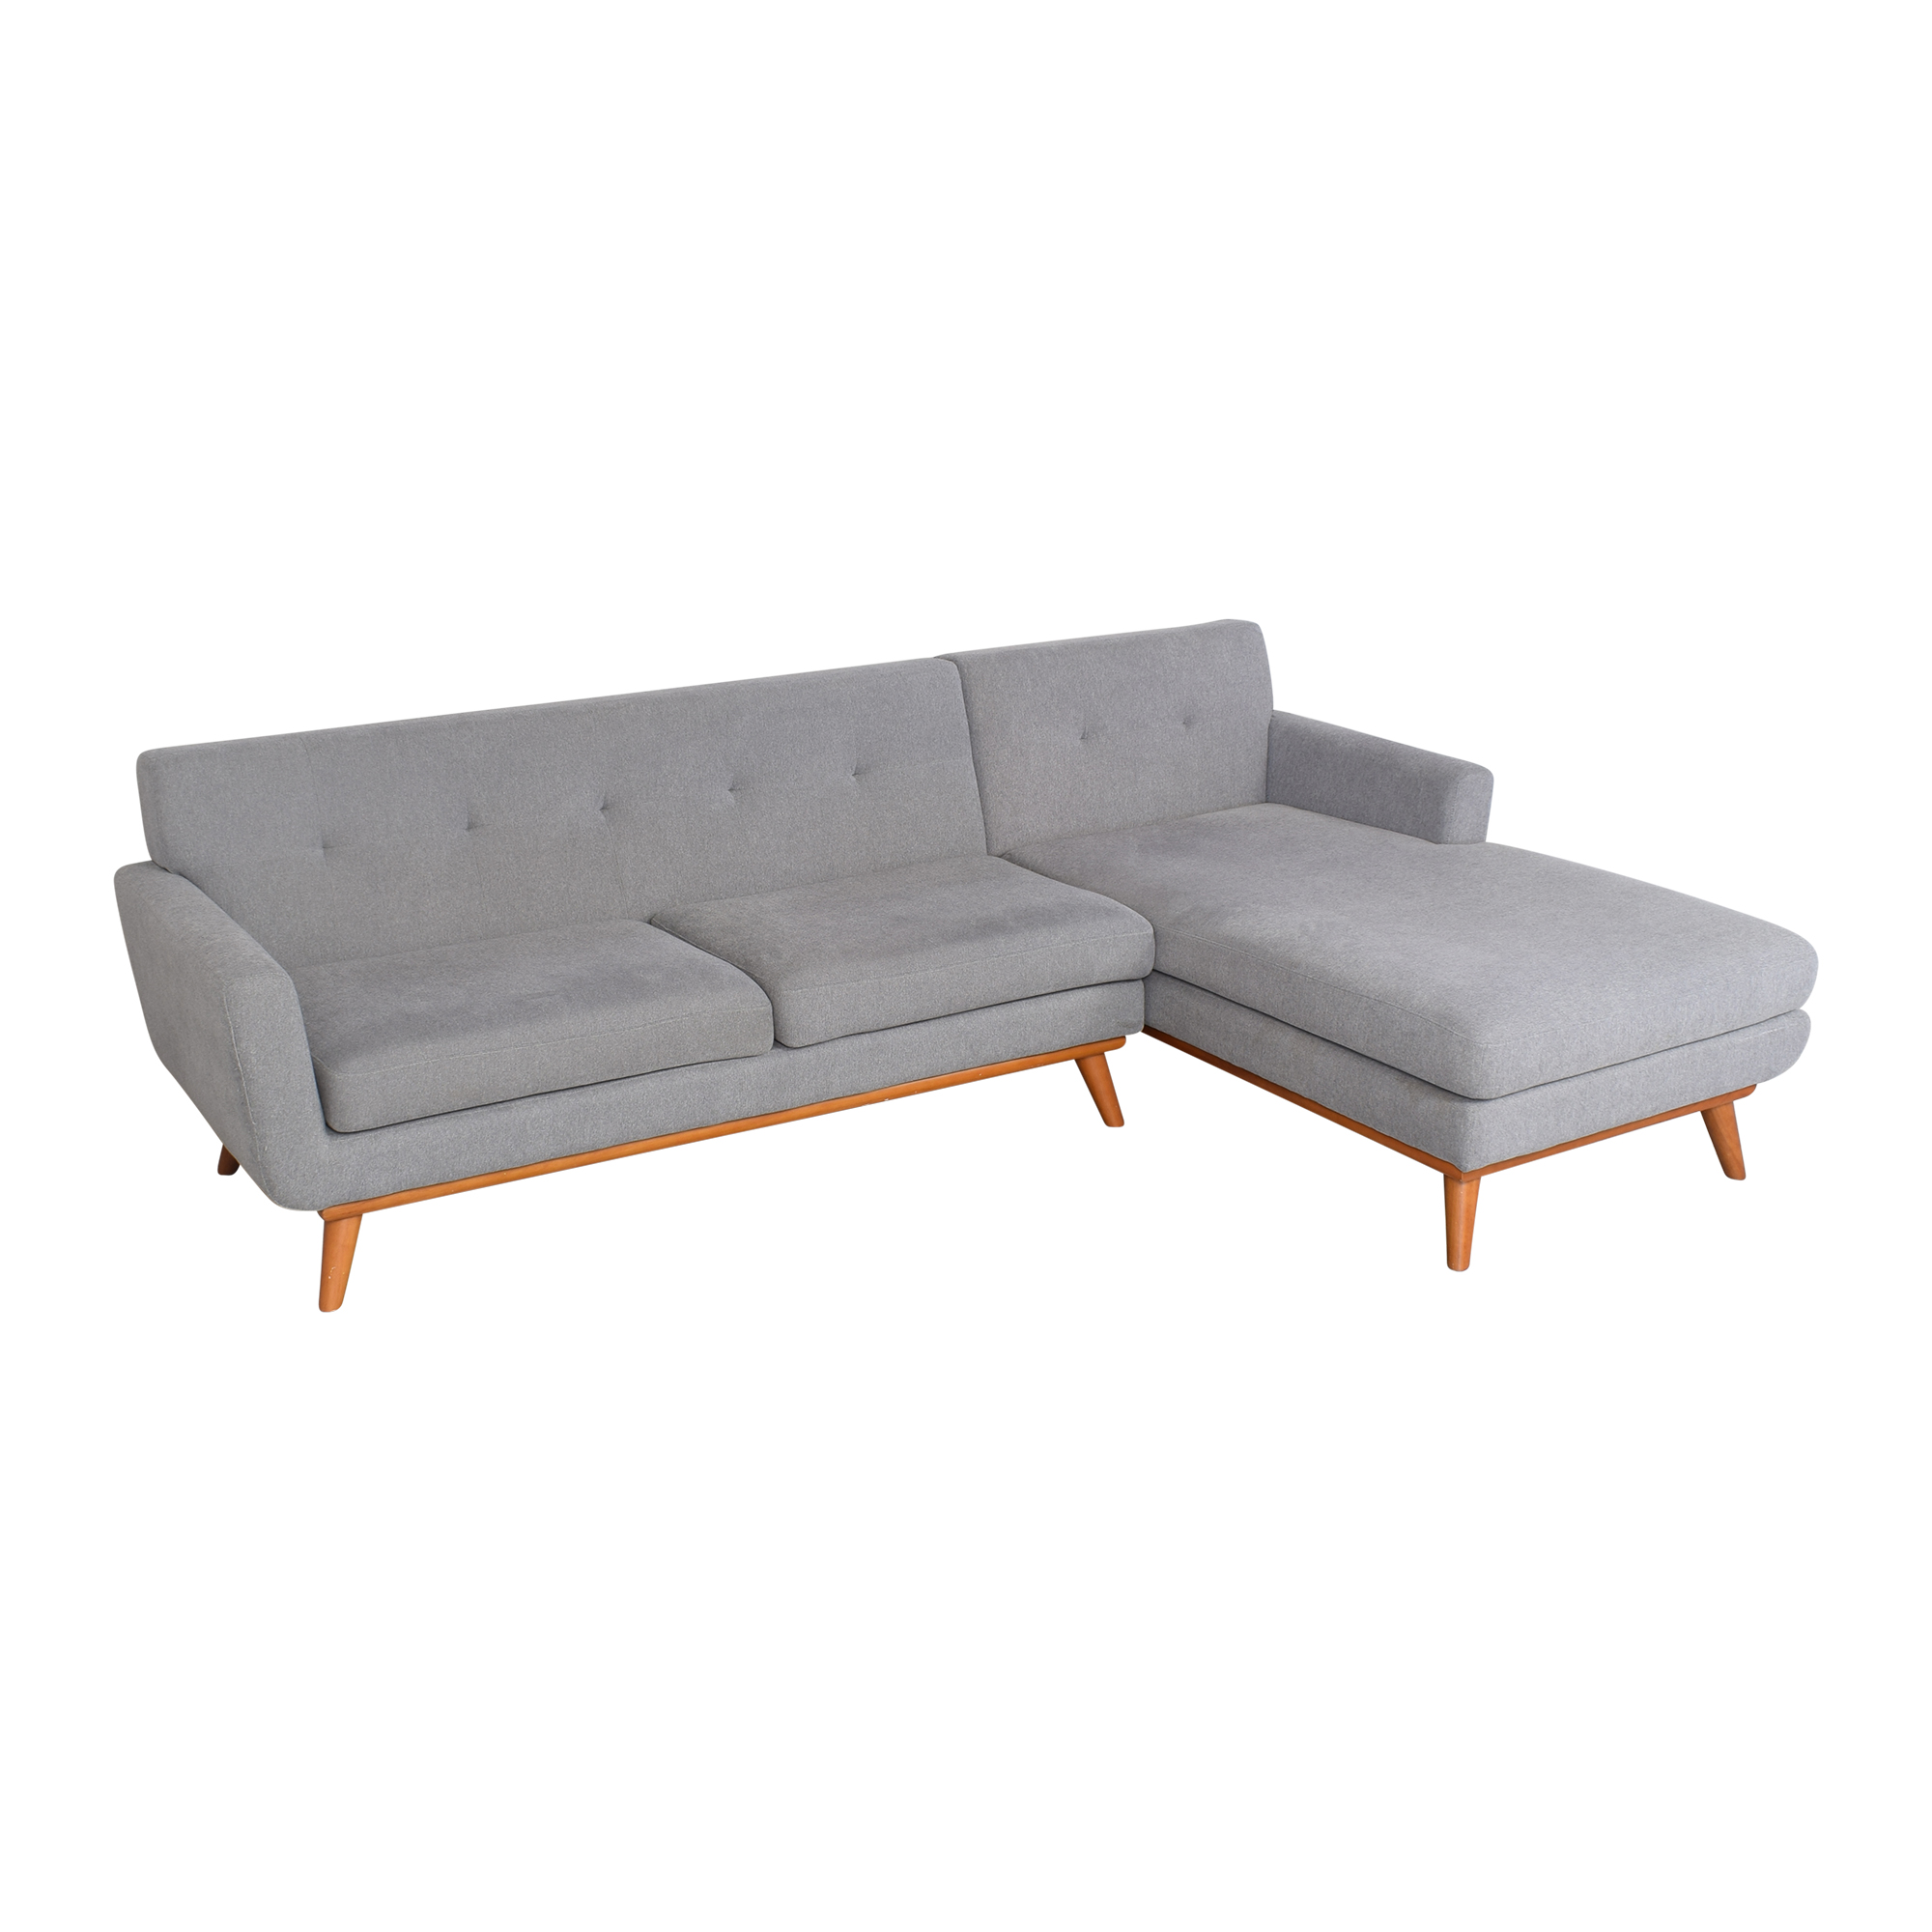 Modway Modway Engage Chaise Sectional Sofa price